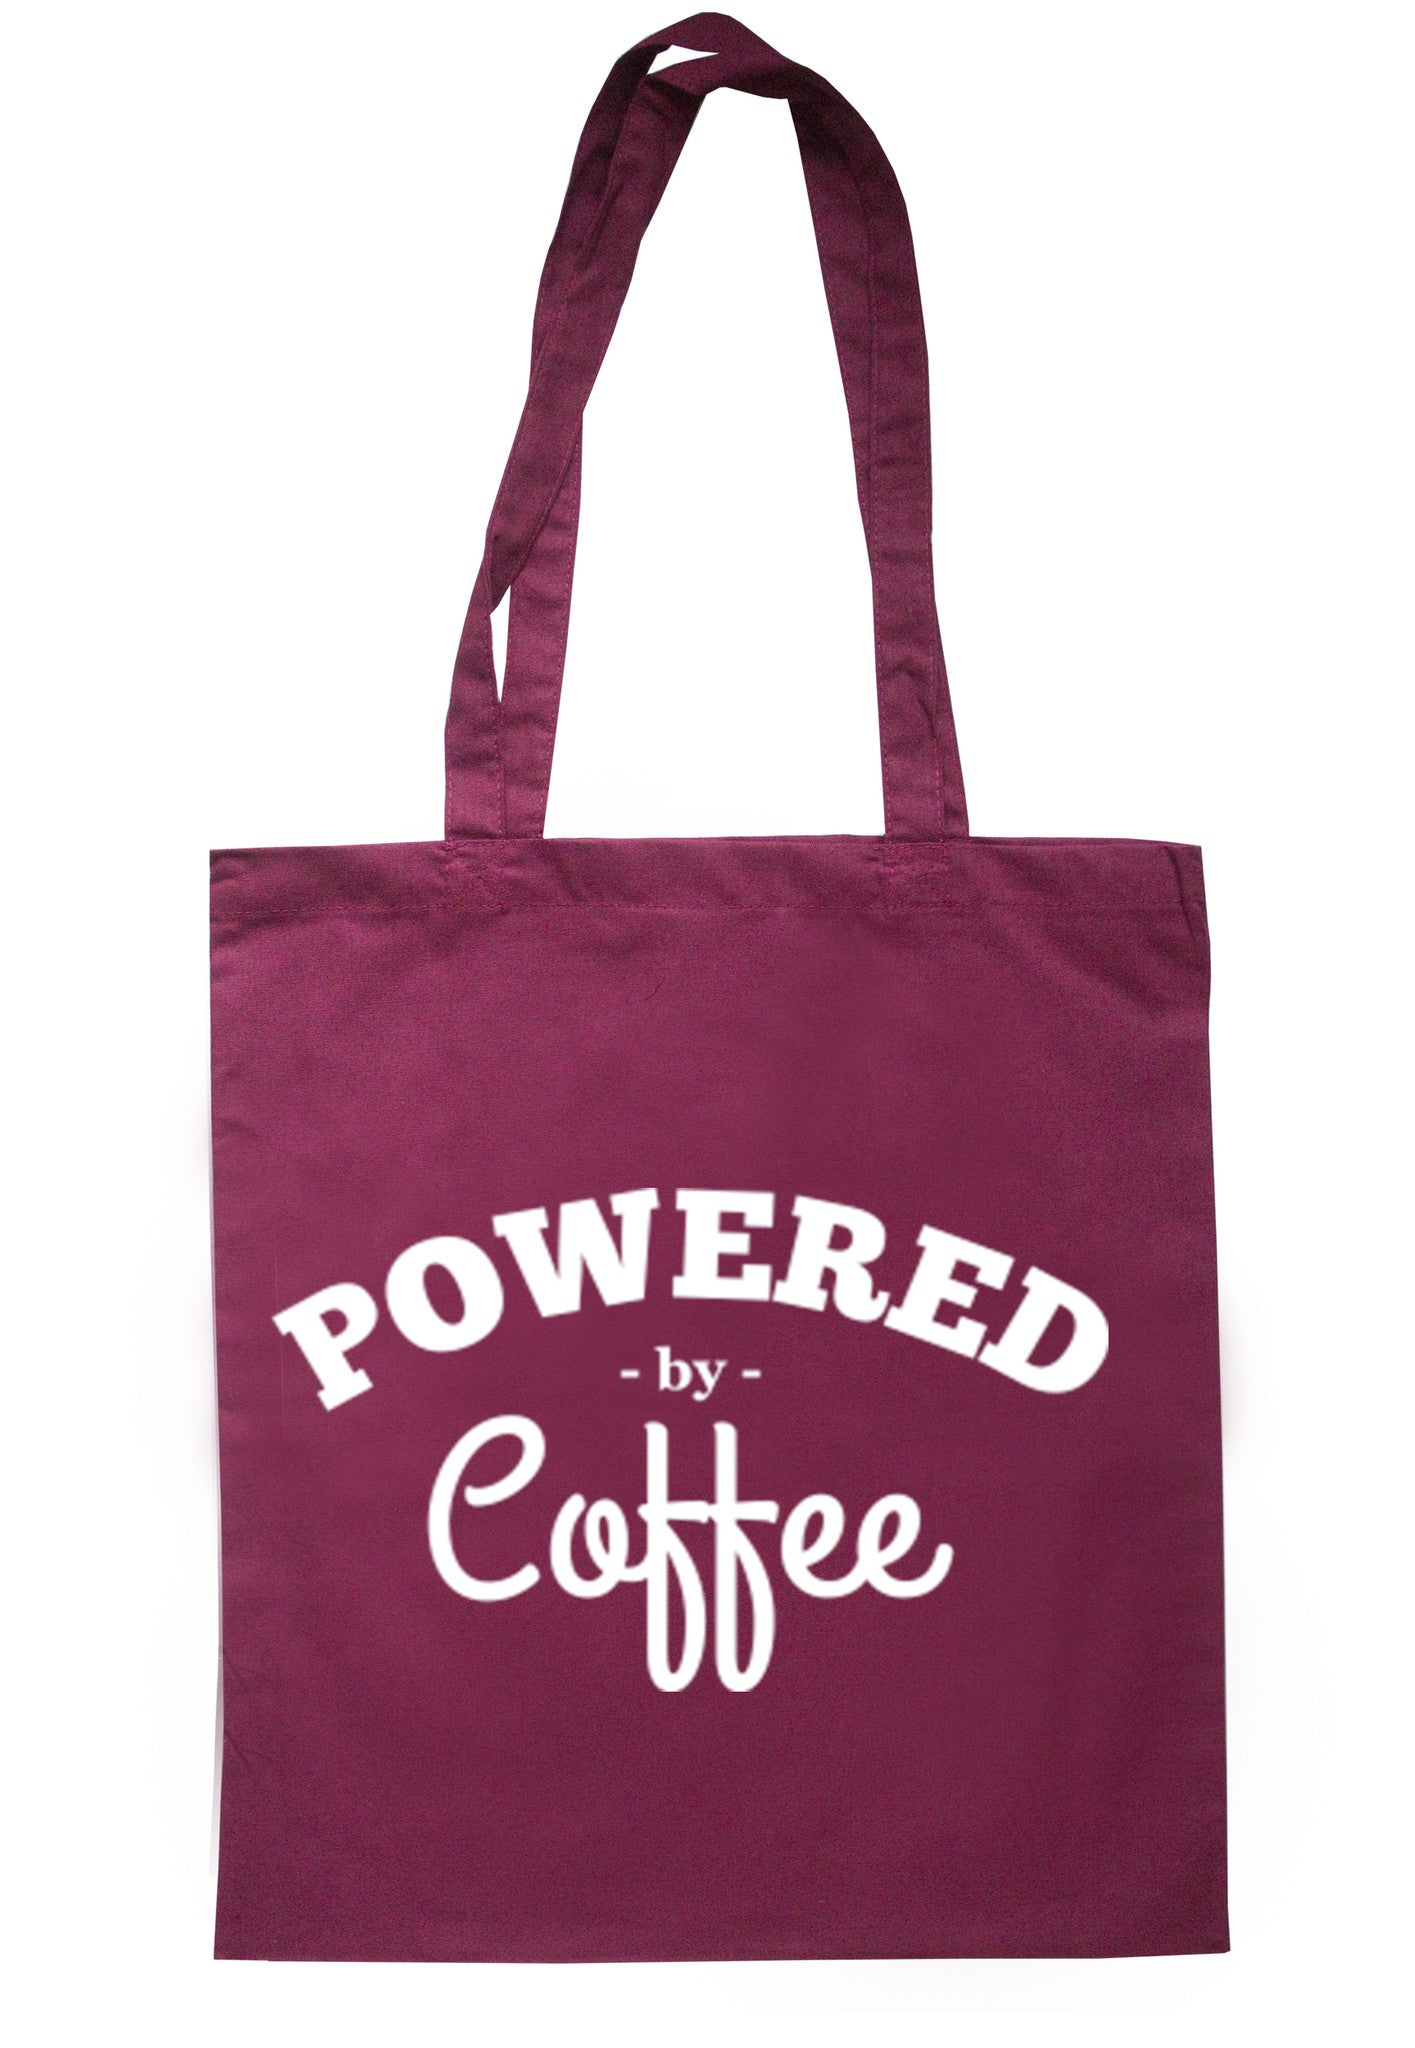 Powered By Coffee Tote Bag TB0092 - Illustrated Identity Ltd.